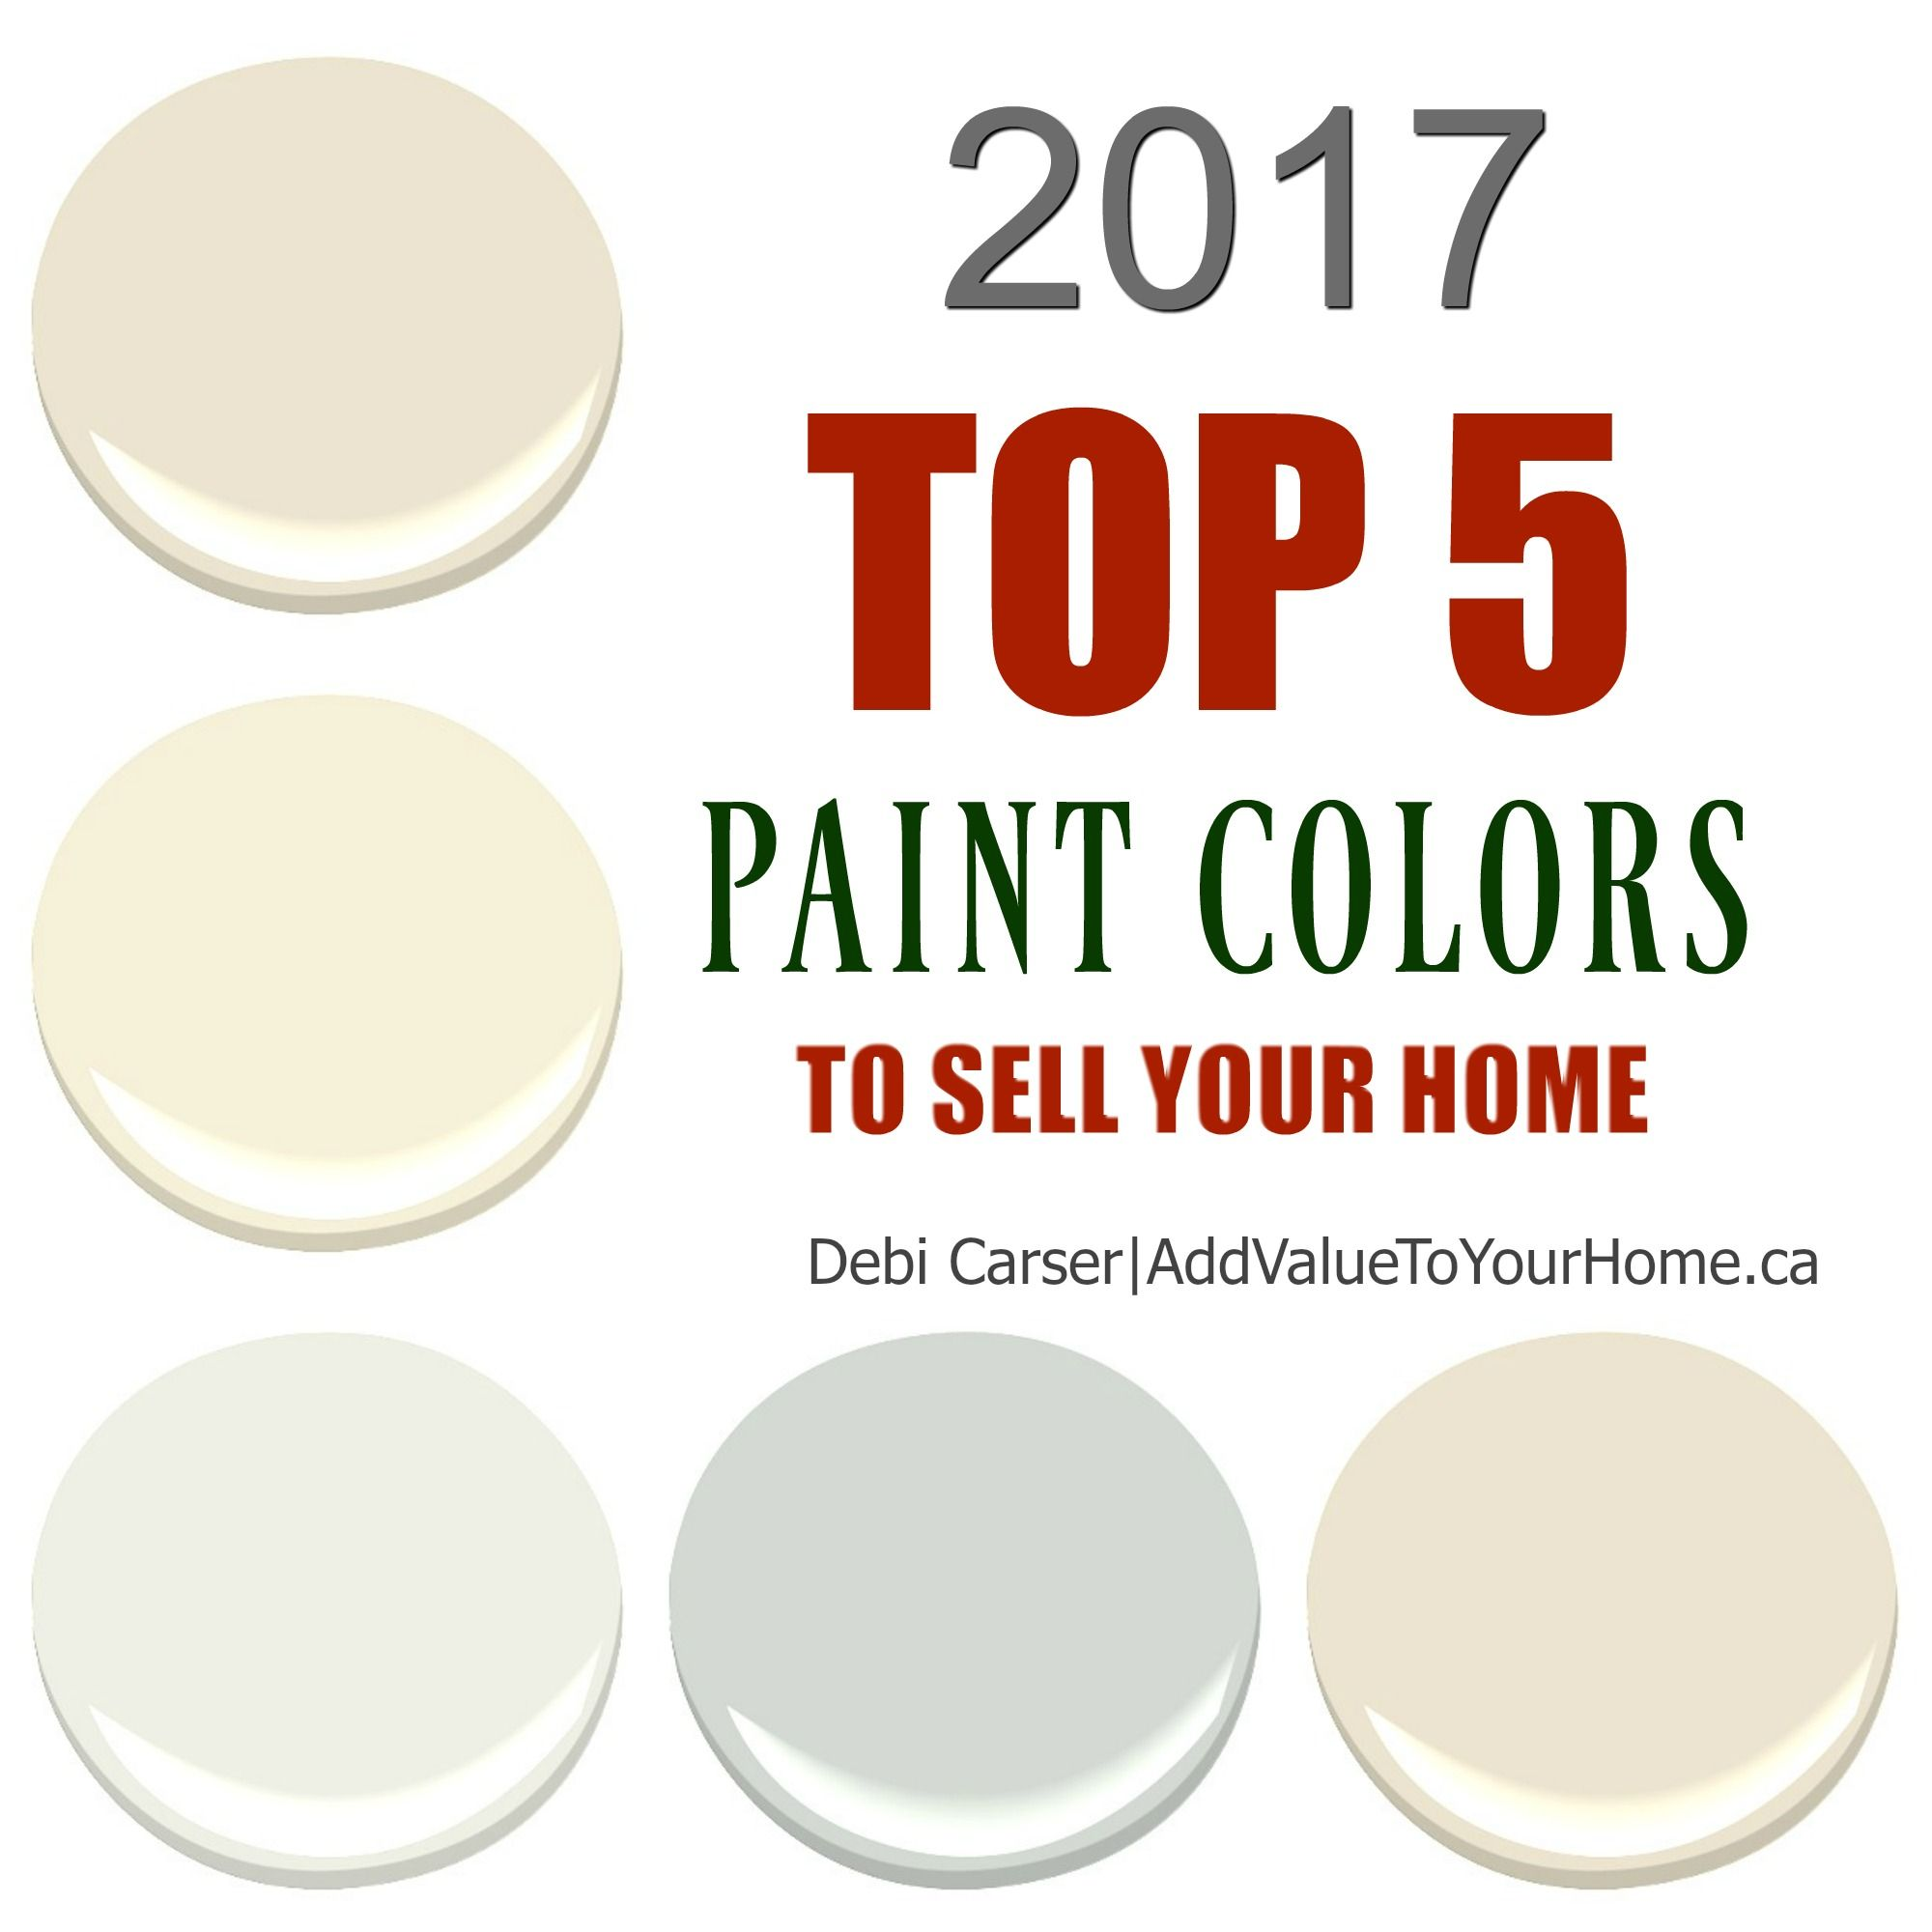 2017 Top 5 Paint Colors To Your Home Find Out What Are In For Staging Right Now Bm Albescent Oc 40 Calming Cream 105